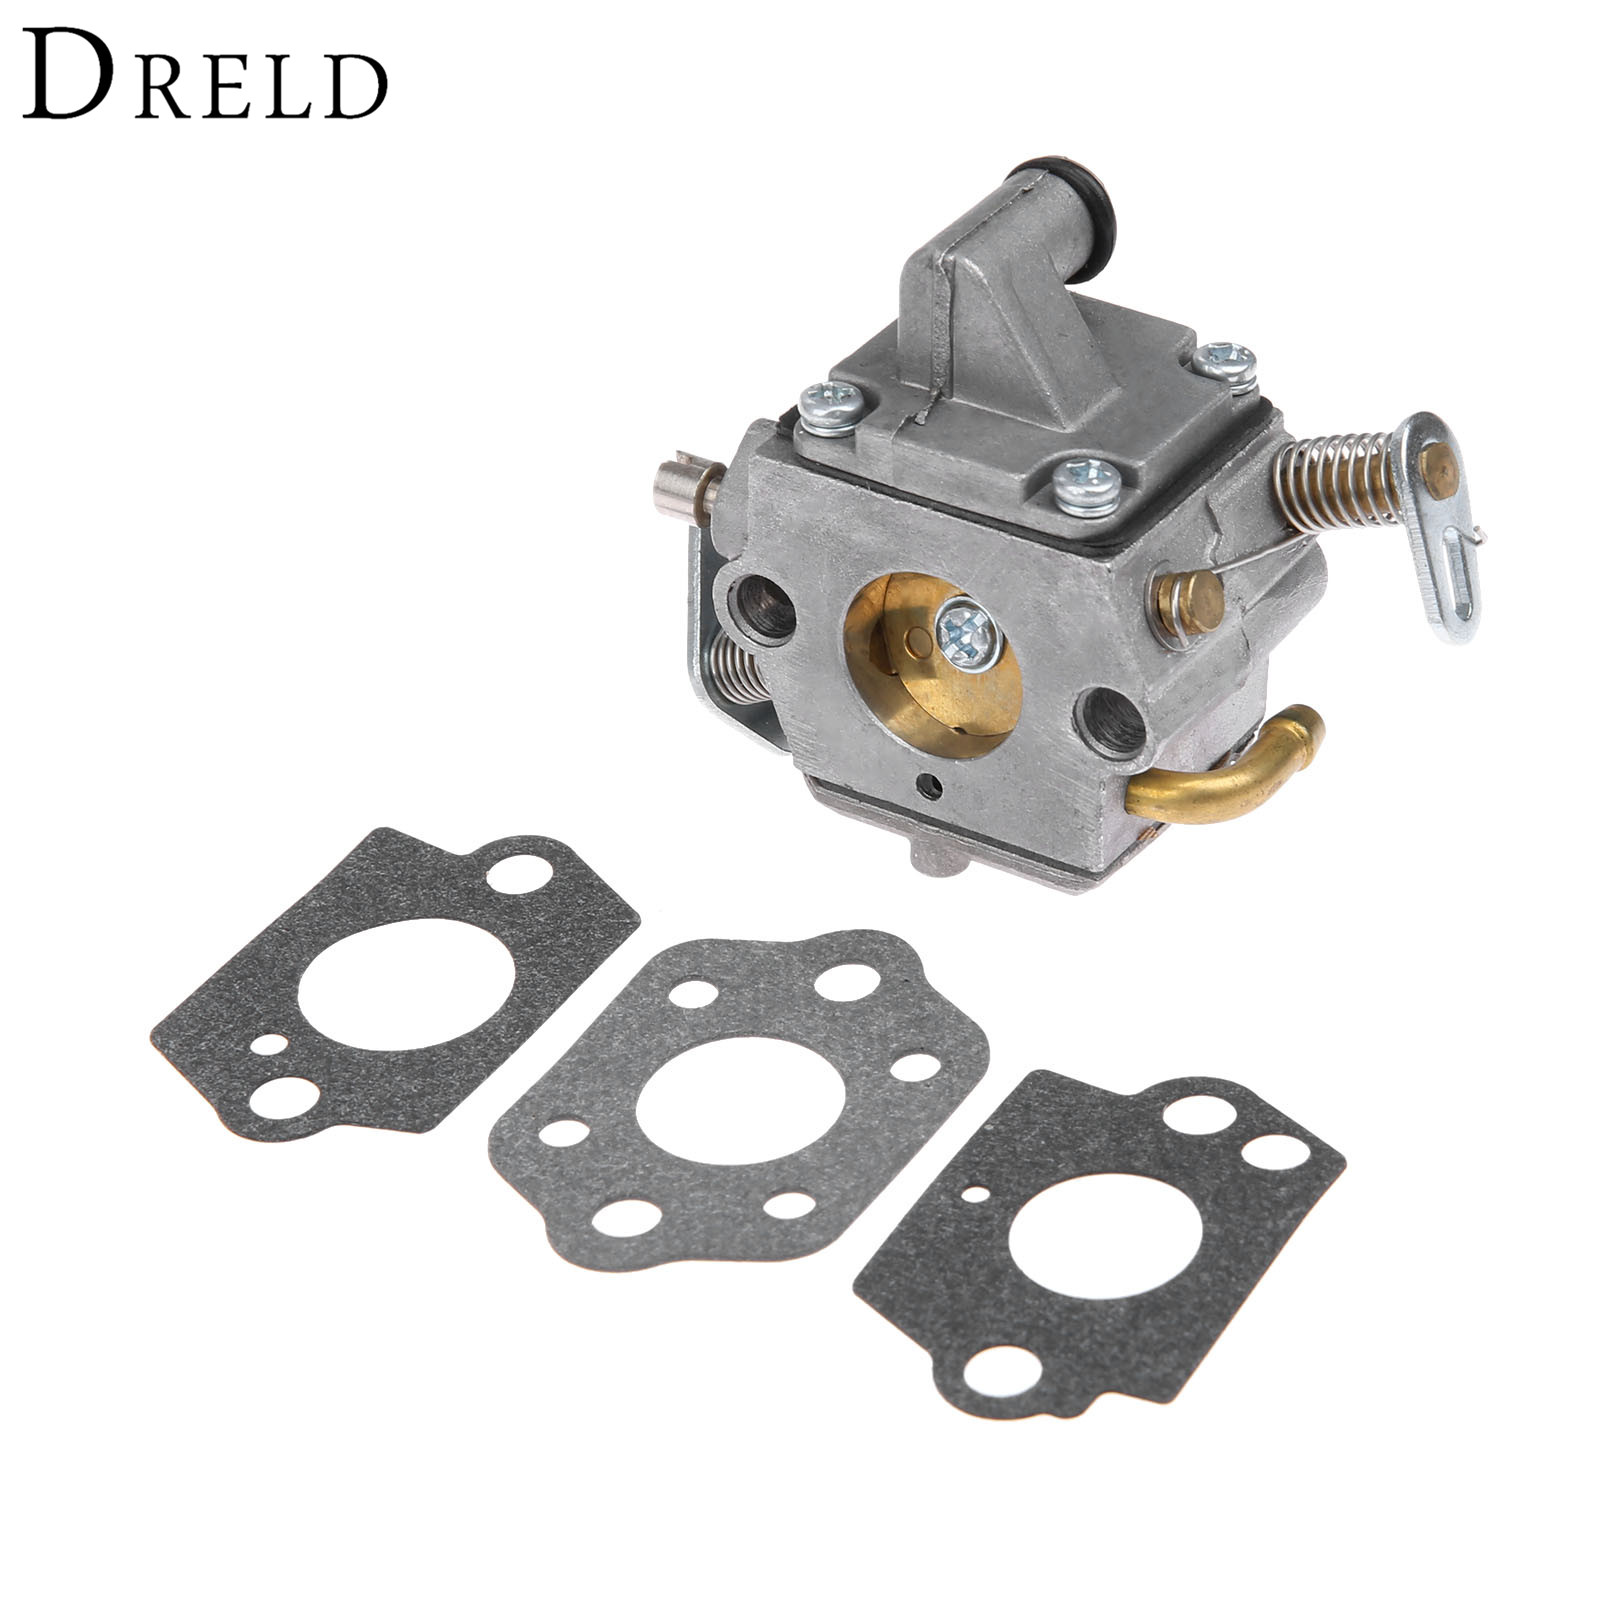 DRELD Chainsaws Carburetor Carby Gasket for Stihl MS170 MS180 MS 170 180  017 018 Replace Carb for Zama C1Q-S57B 1130 120 0603